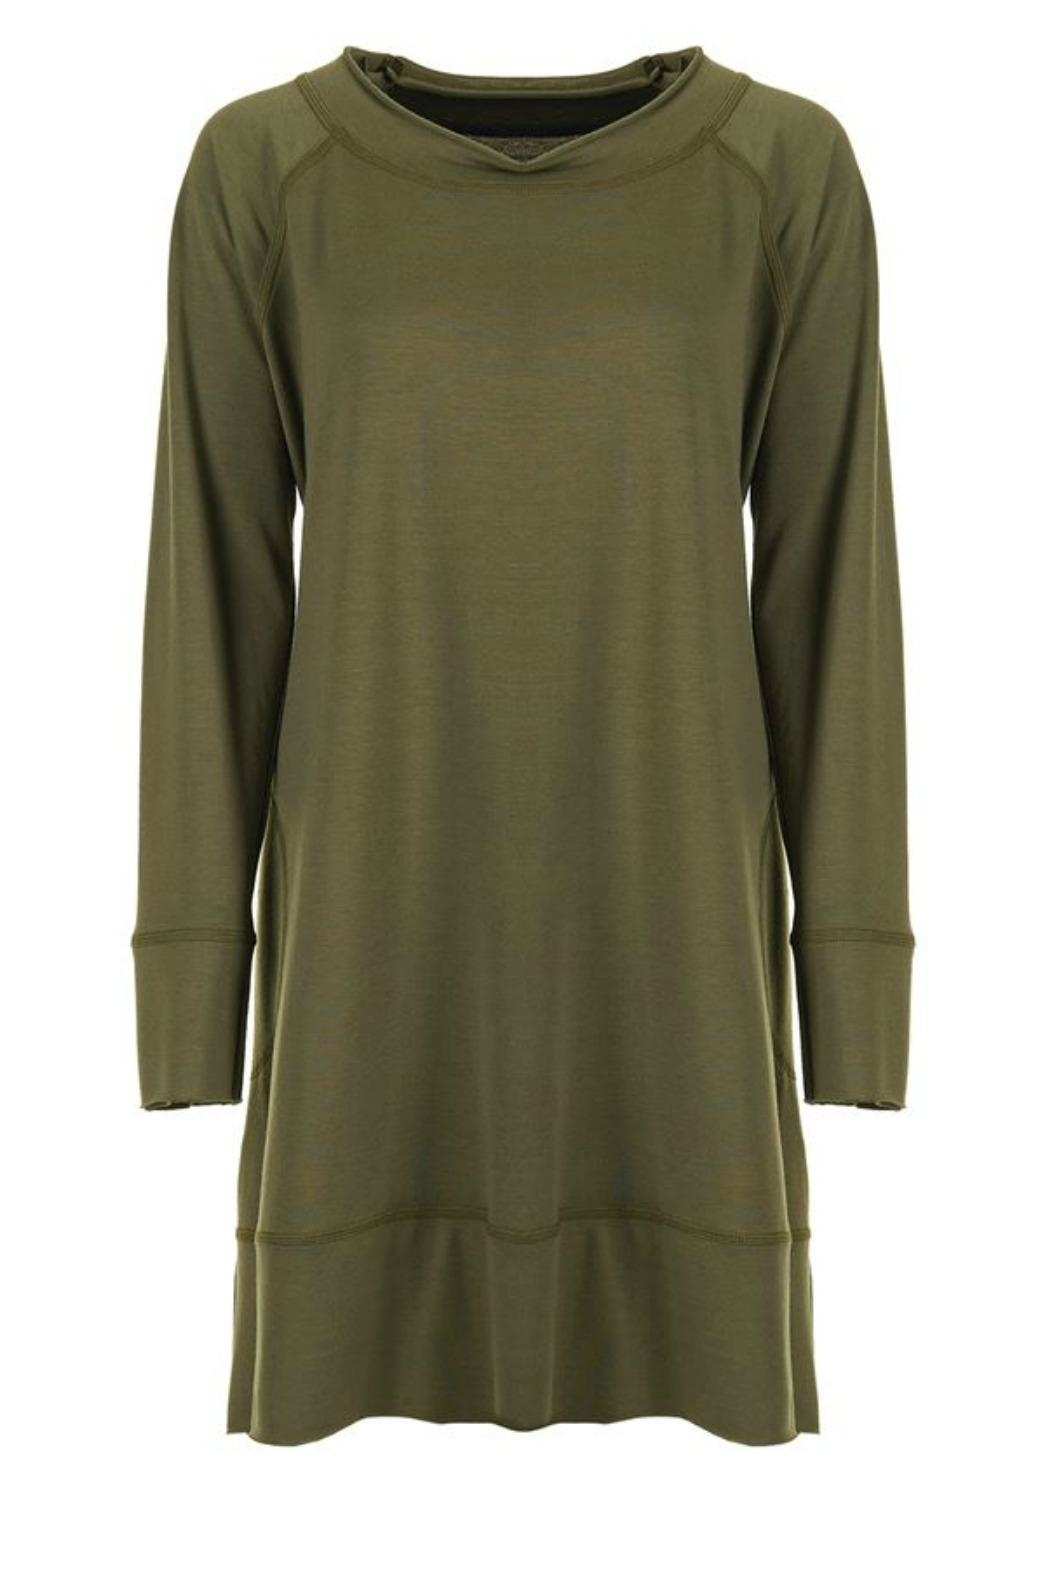 Coco + Carmen Frency Terry Tunic Dress - Front Cropped Image